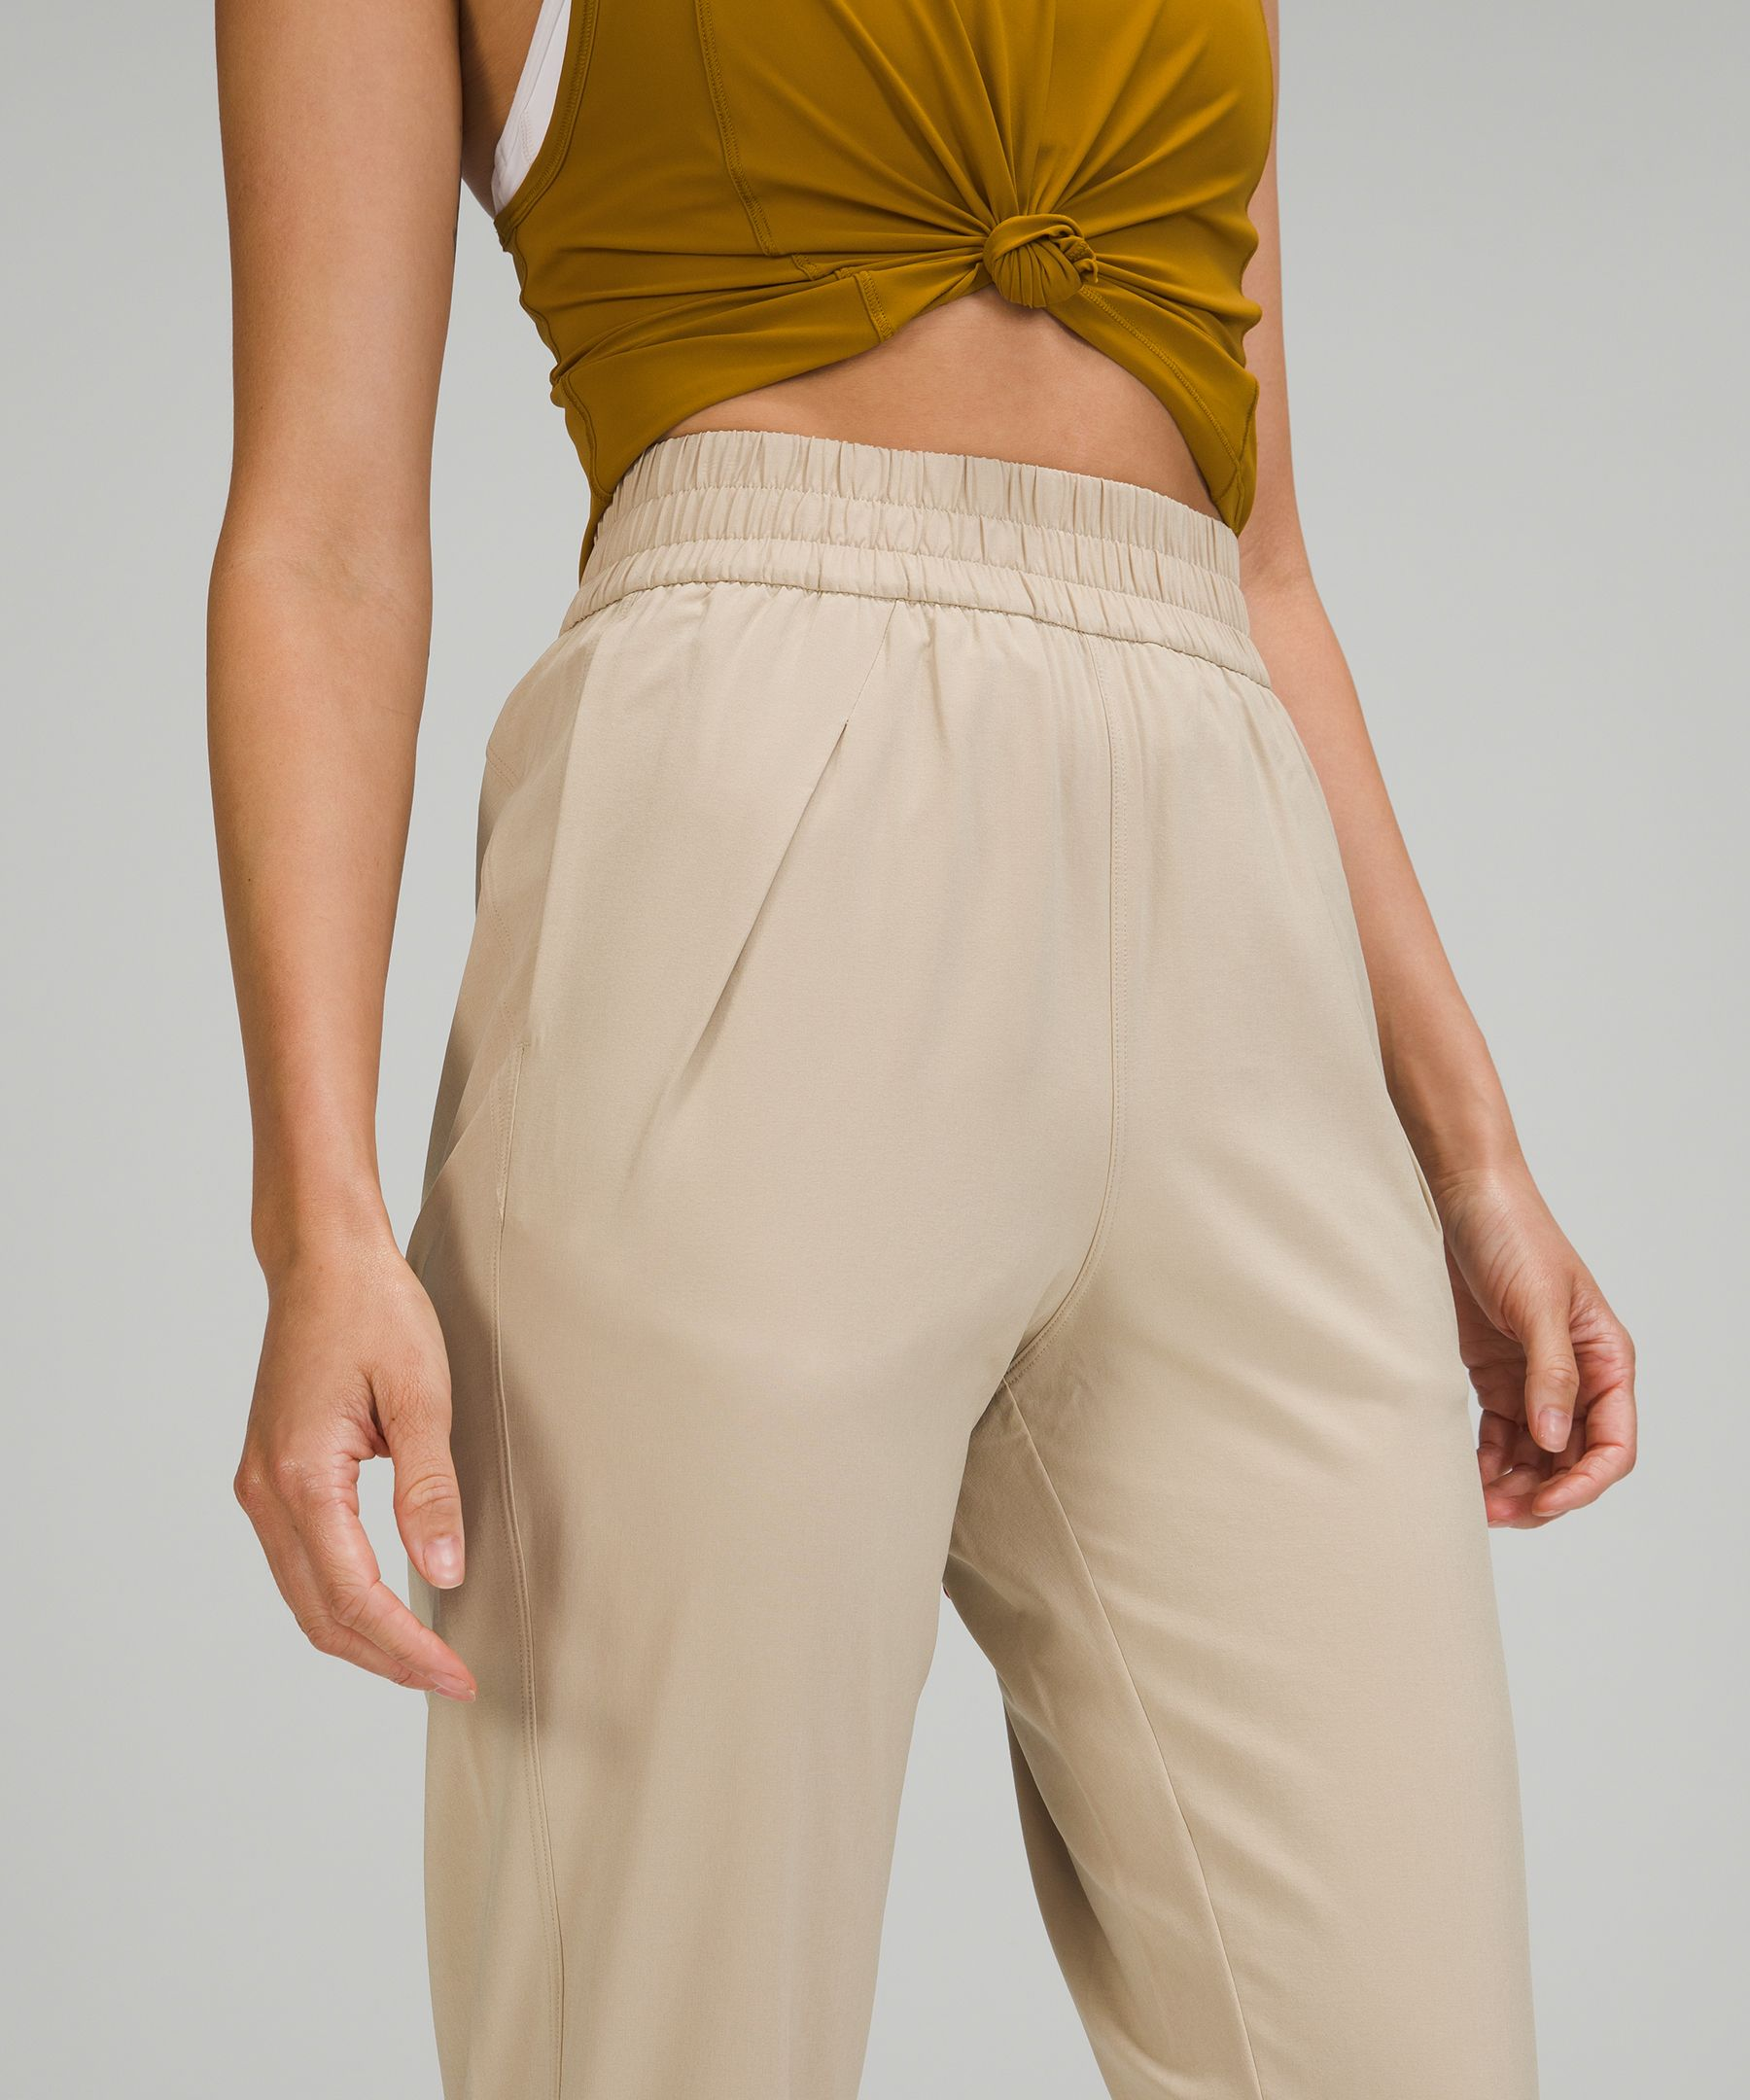 Ease Back In High-Rise Pant